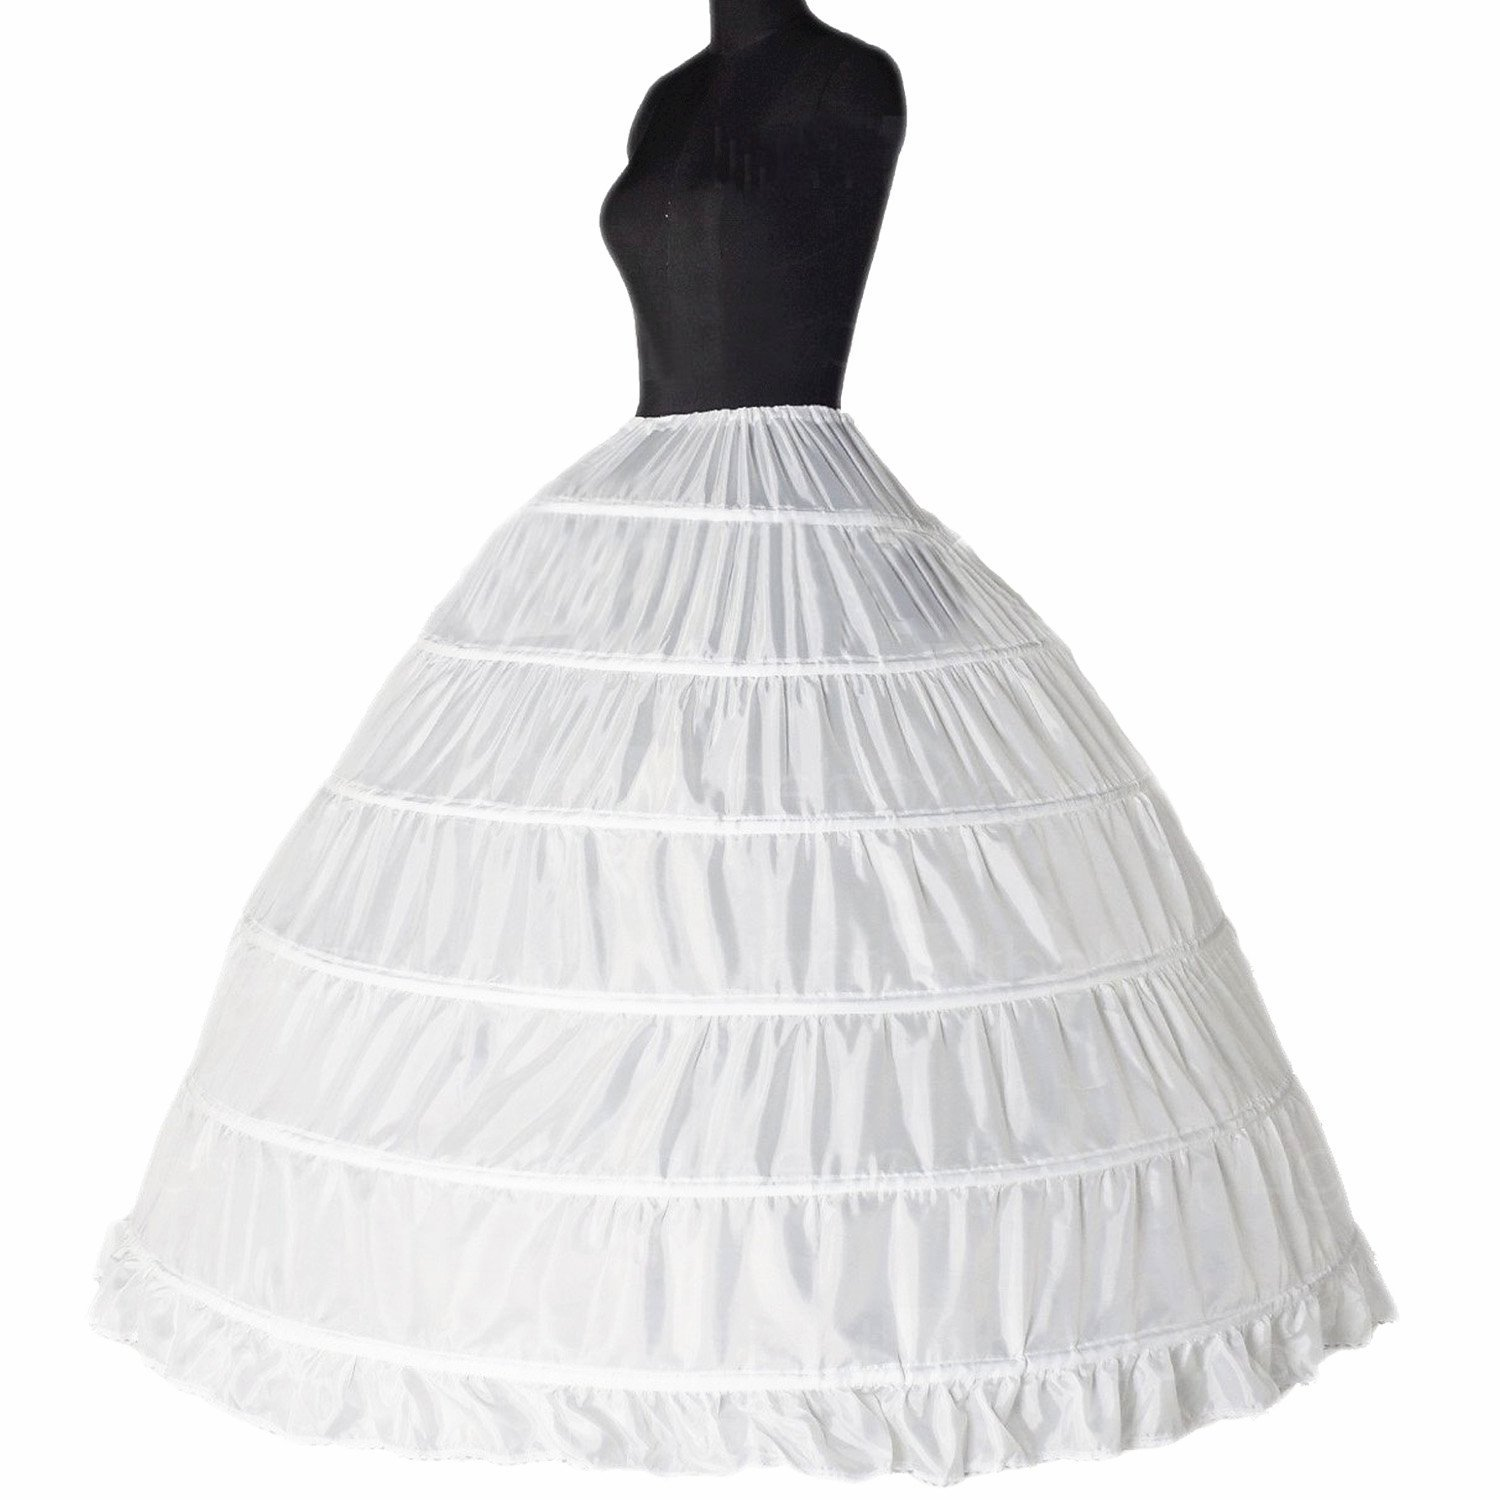 Bridal Petticoats Slips Dress Petticoat Wedding Dress White Underskirt Petticoats Crinoline Slips 6 Hoops by TMISHION